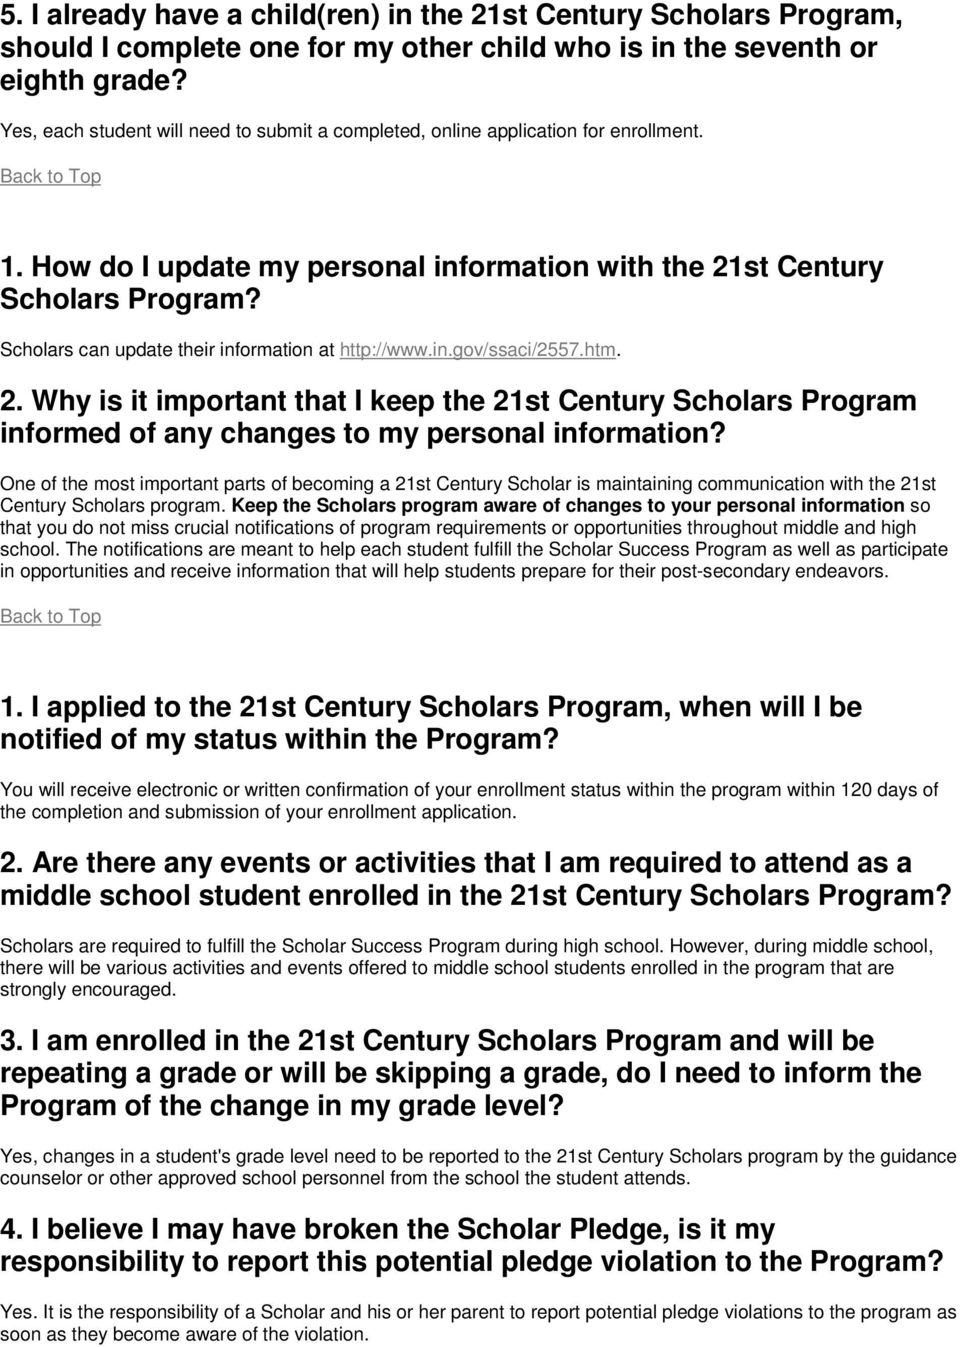 How do I update my personal information with the 21st Century Scholars Program? Scholars can update their information at http://www.in.gov/ssaci/2557.htm. 2. Why is it important that I keep the 21st Century Scholars Program informed of any changes to my personal information?